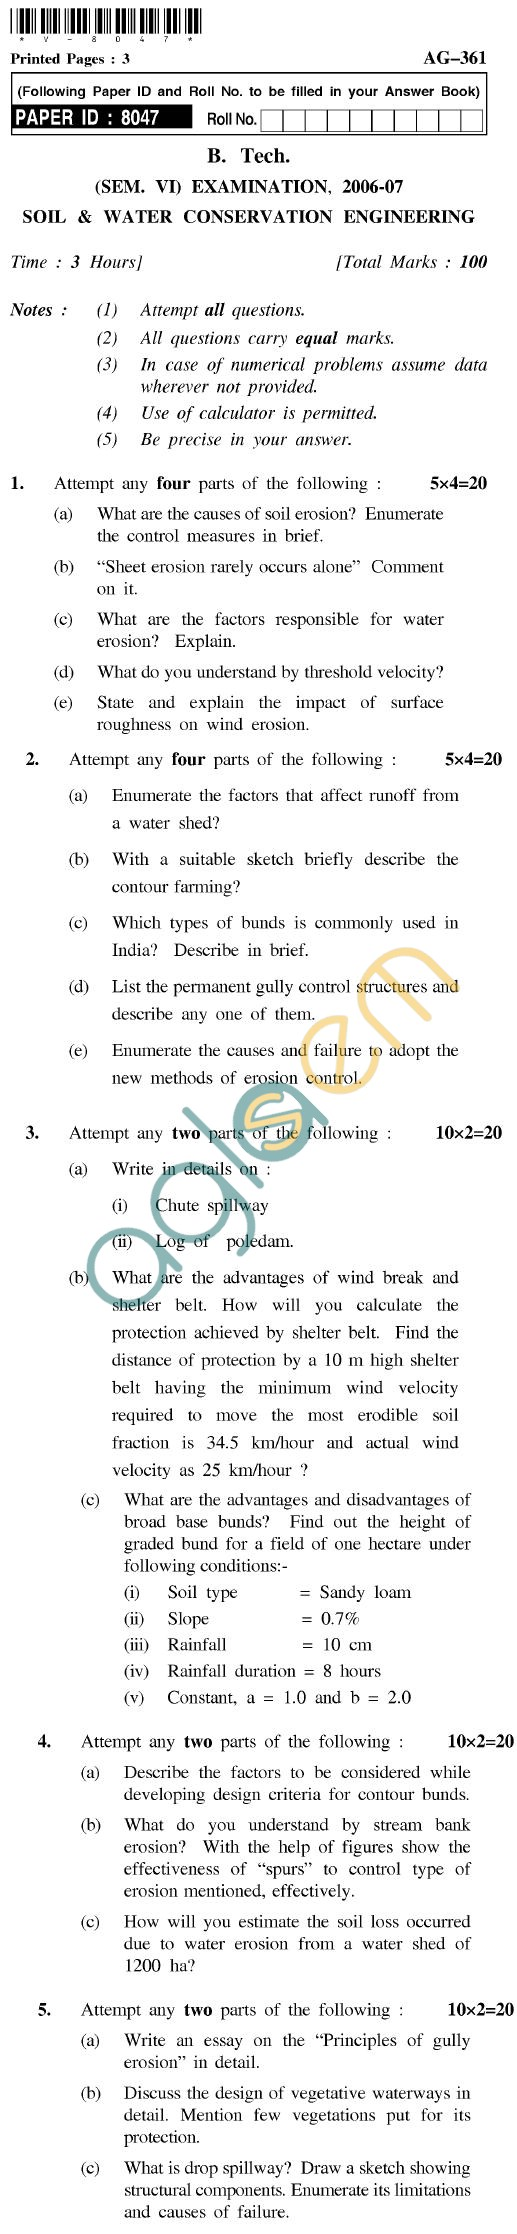 UPTU B.Tech Question Papers - AG-361 - Soil & Water Conservation Engineering